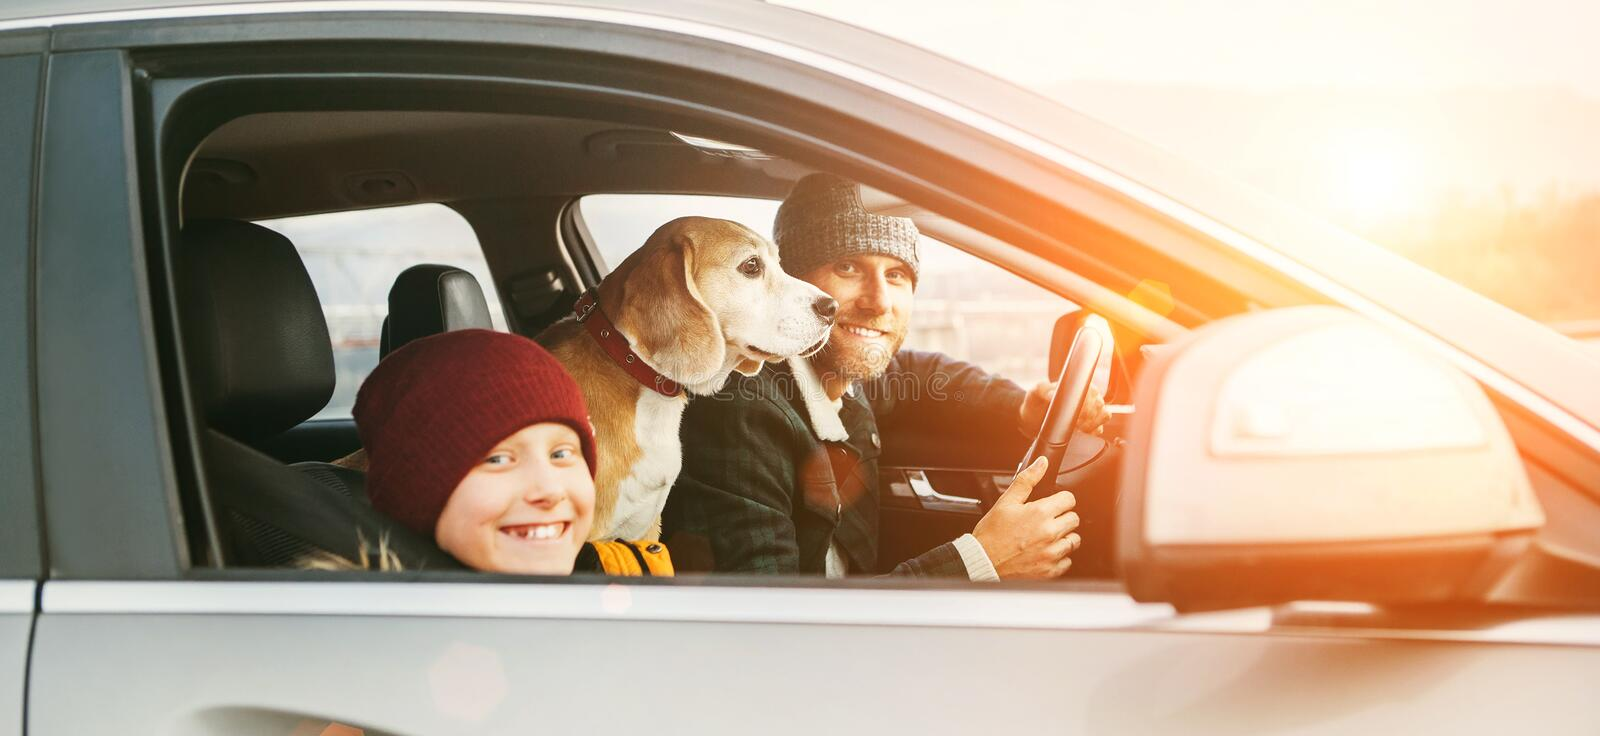 Father and son Family traveling by car with beagle dog. They are smiling to camera fixed with safety belts royalty free stock photography